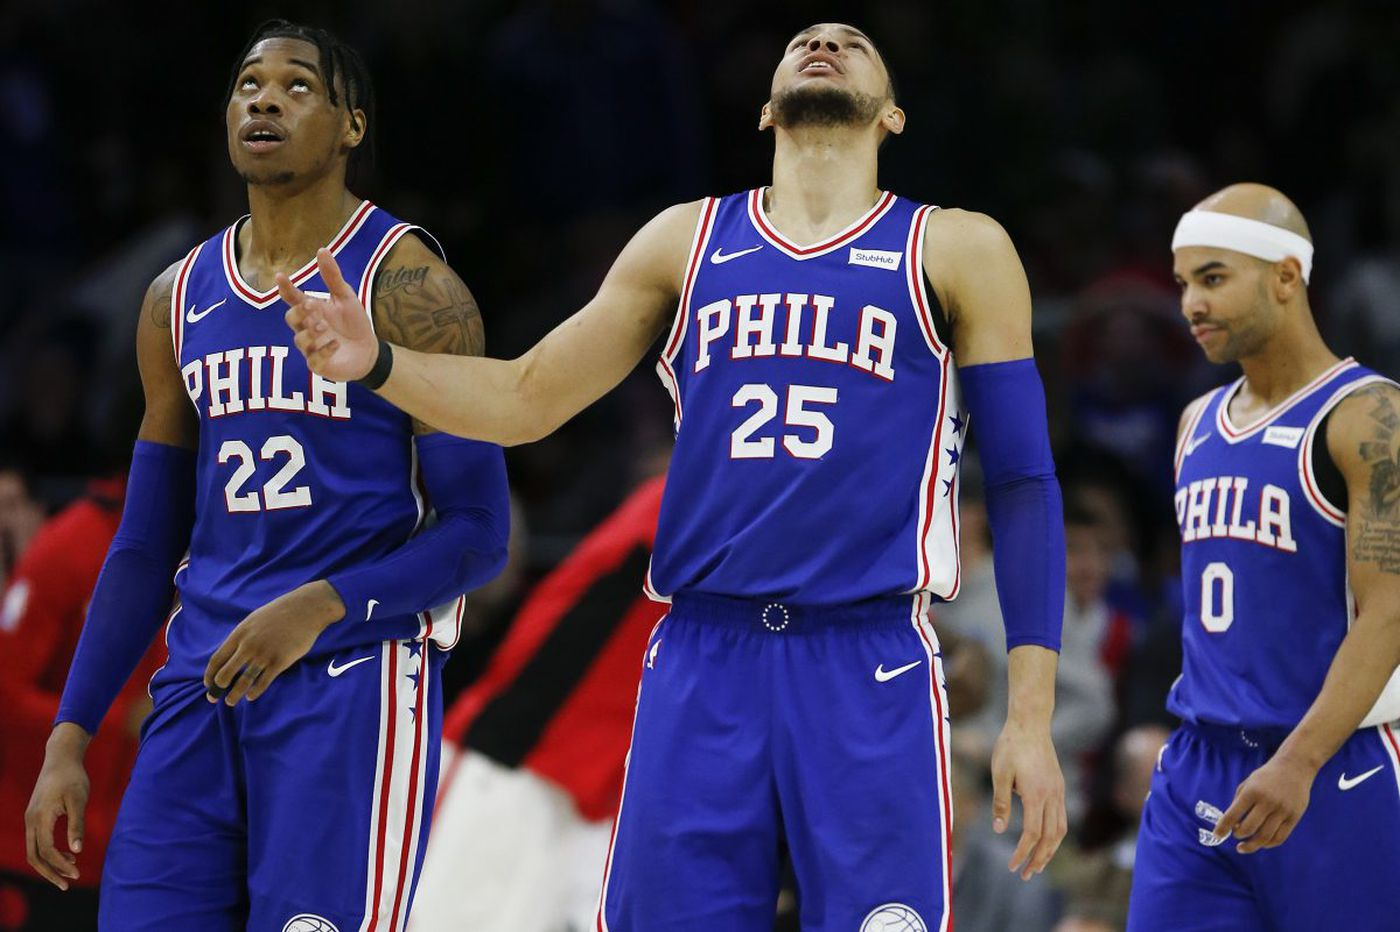 Sixers blow 22-point lead in 114-109 loss to Raptors